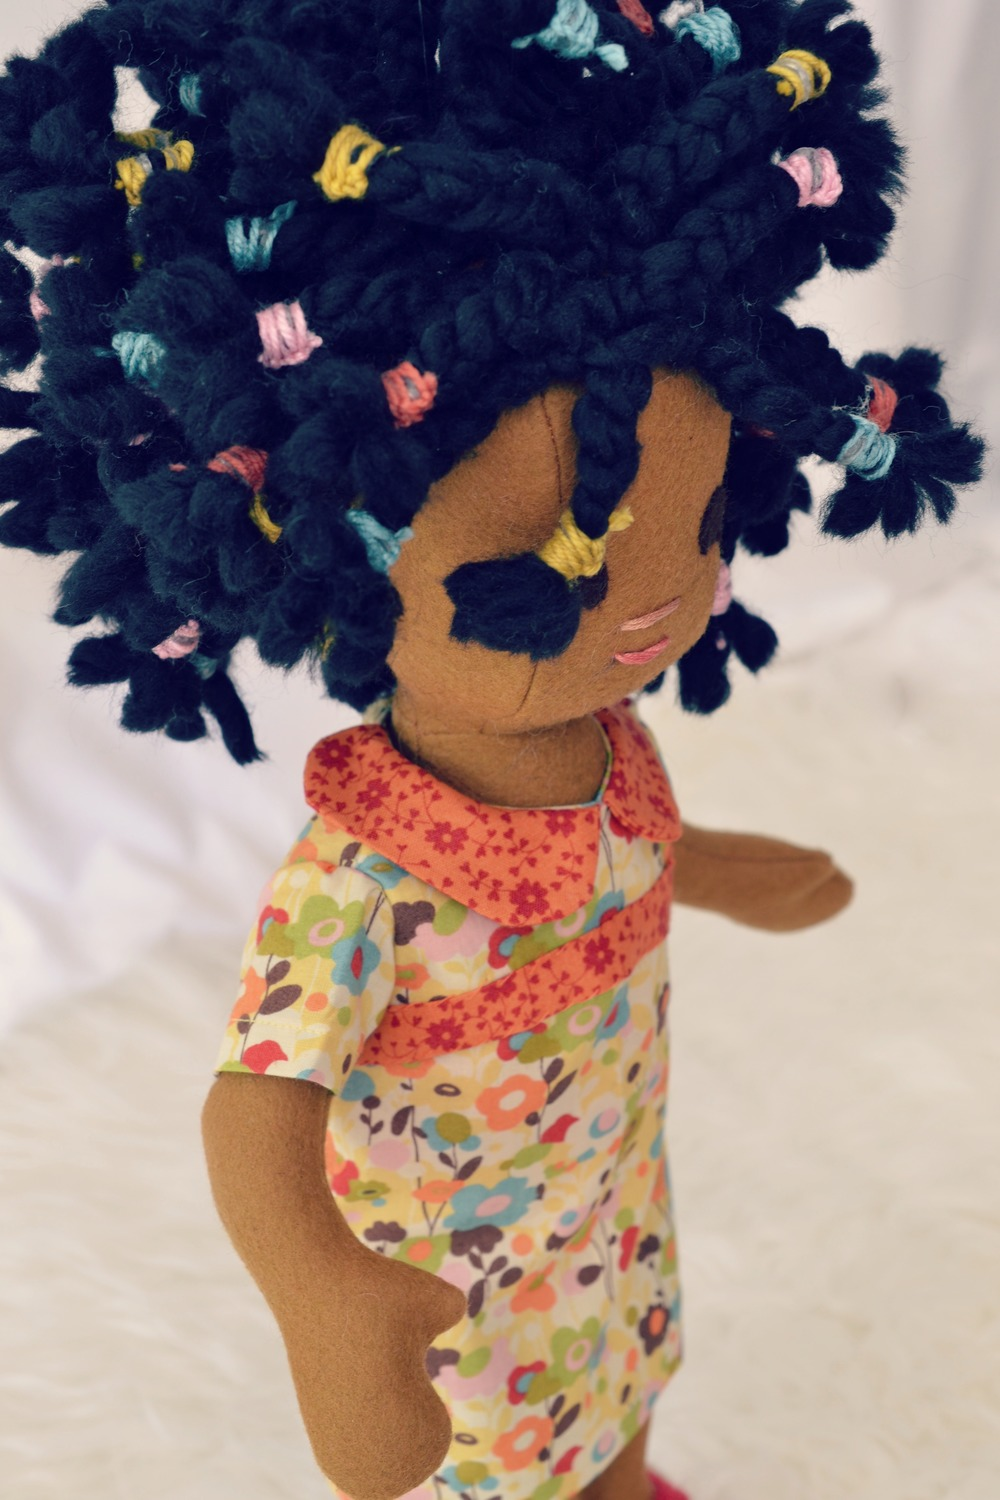 Handmade doll with braids